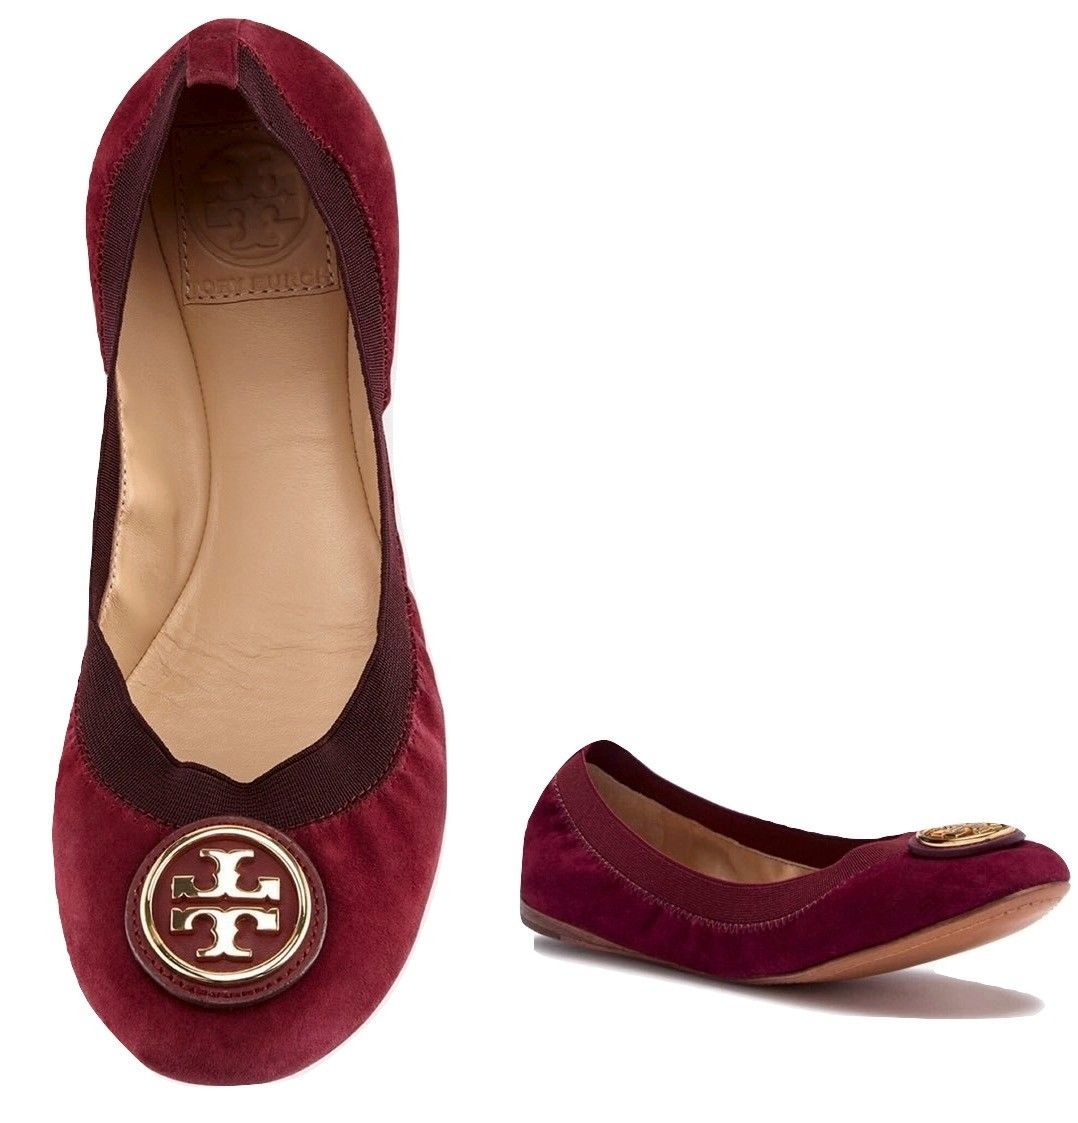 Tory Burch Caroline 2 Ballet Flat Shoes In Cabernet